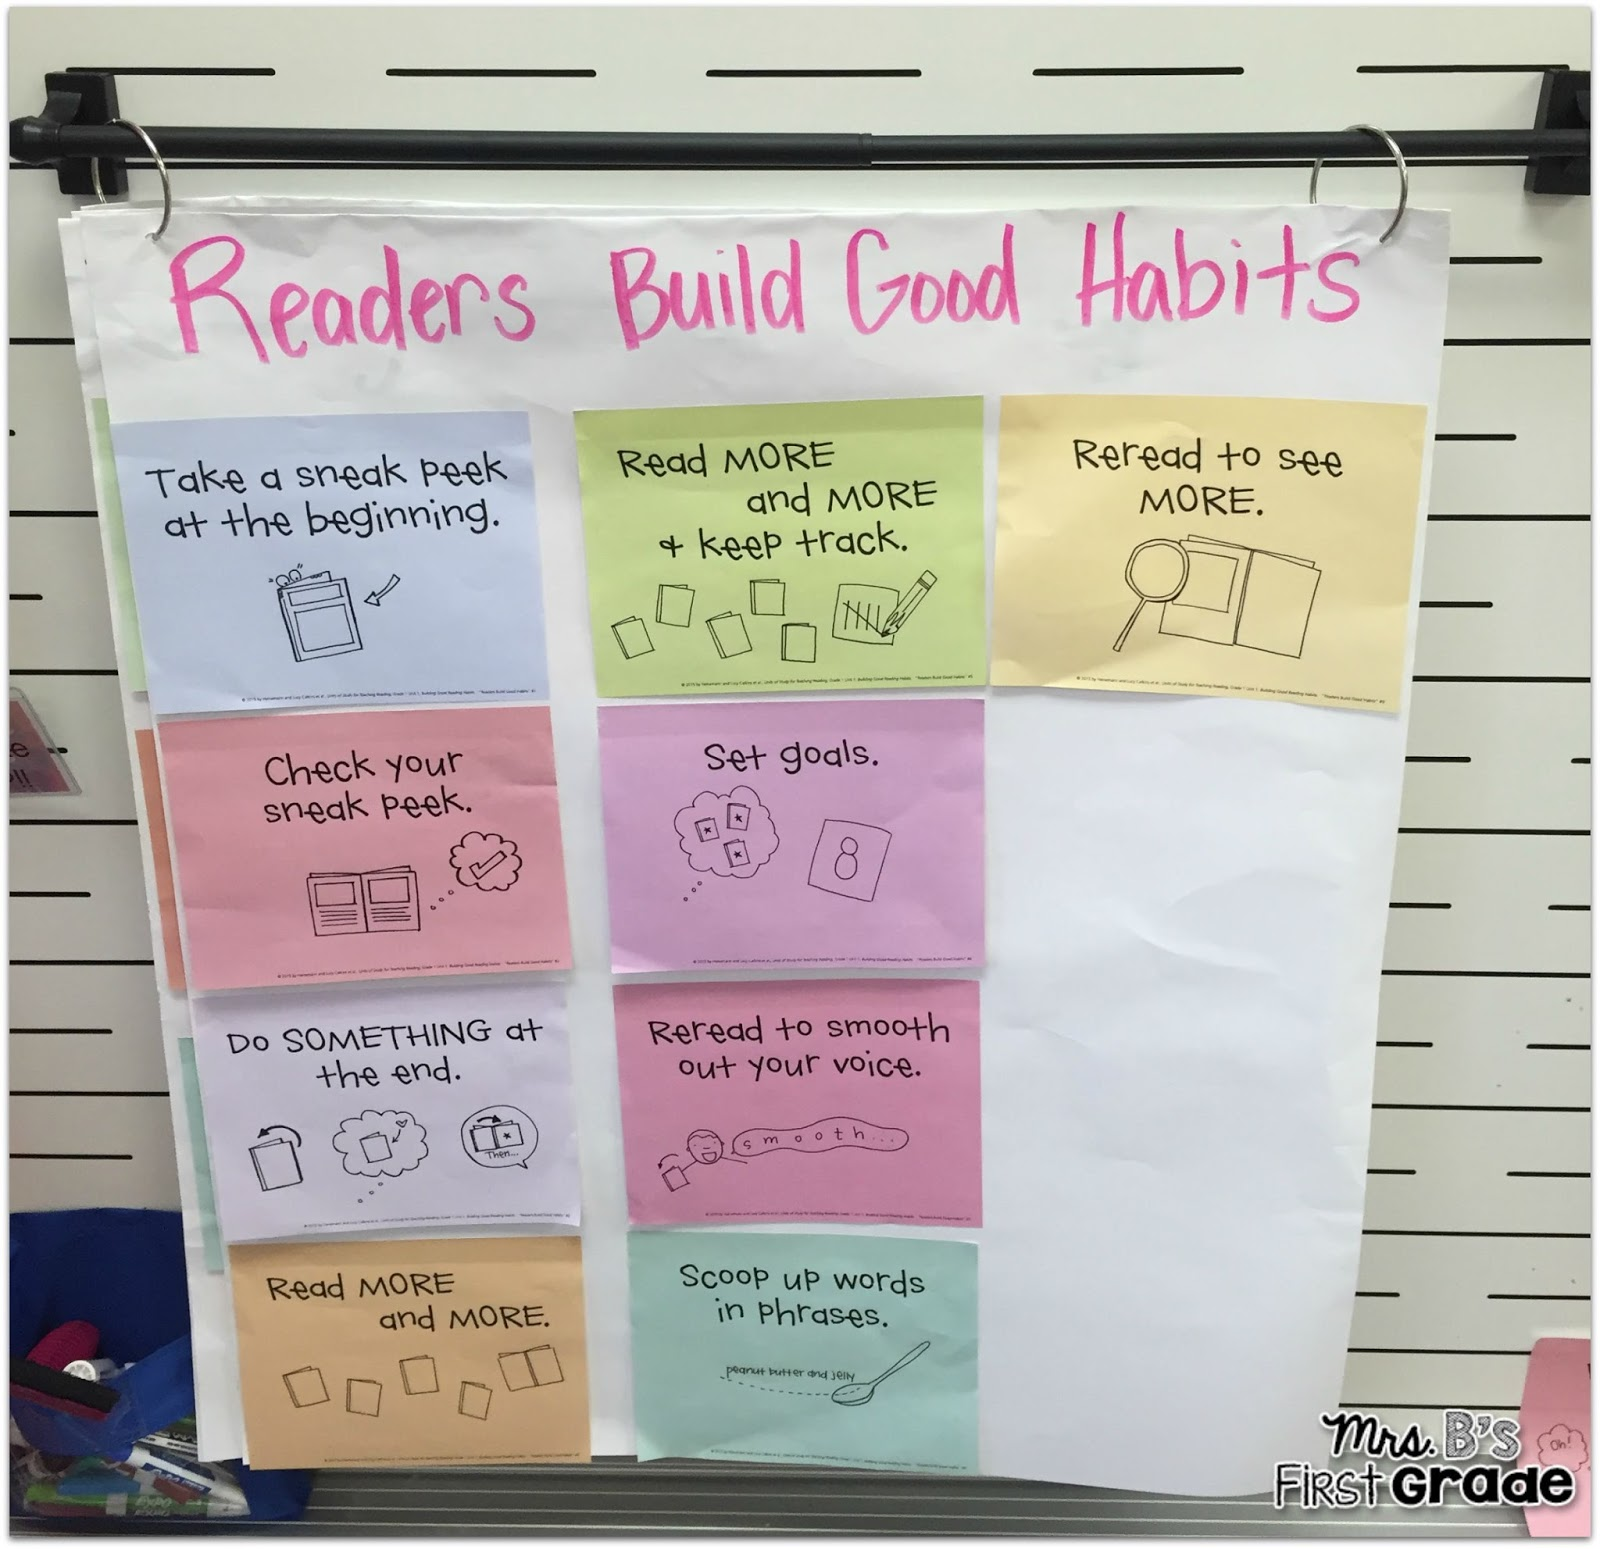 How can children become good readers?